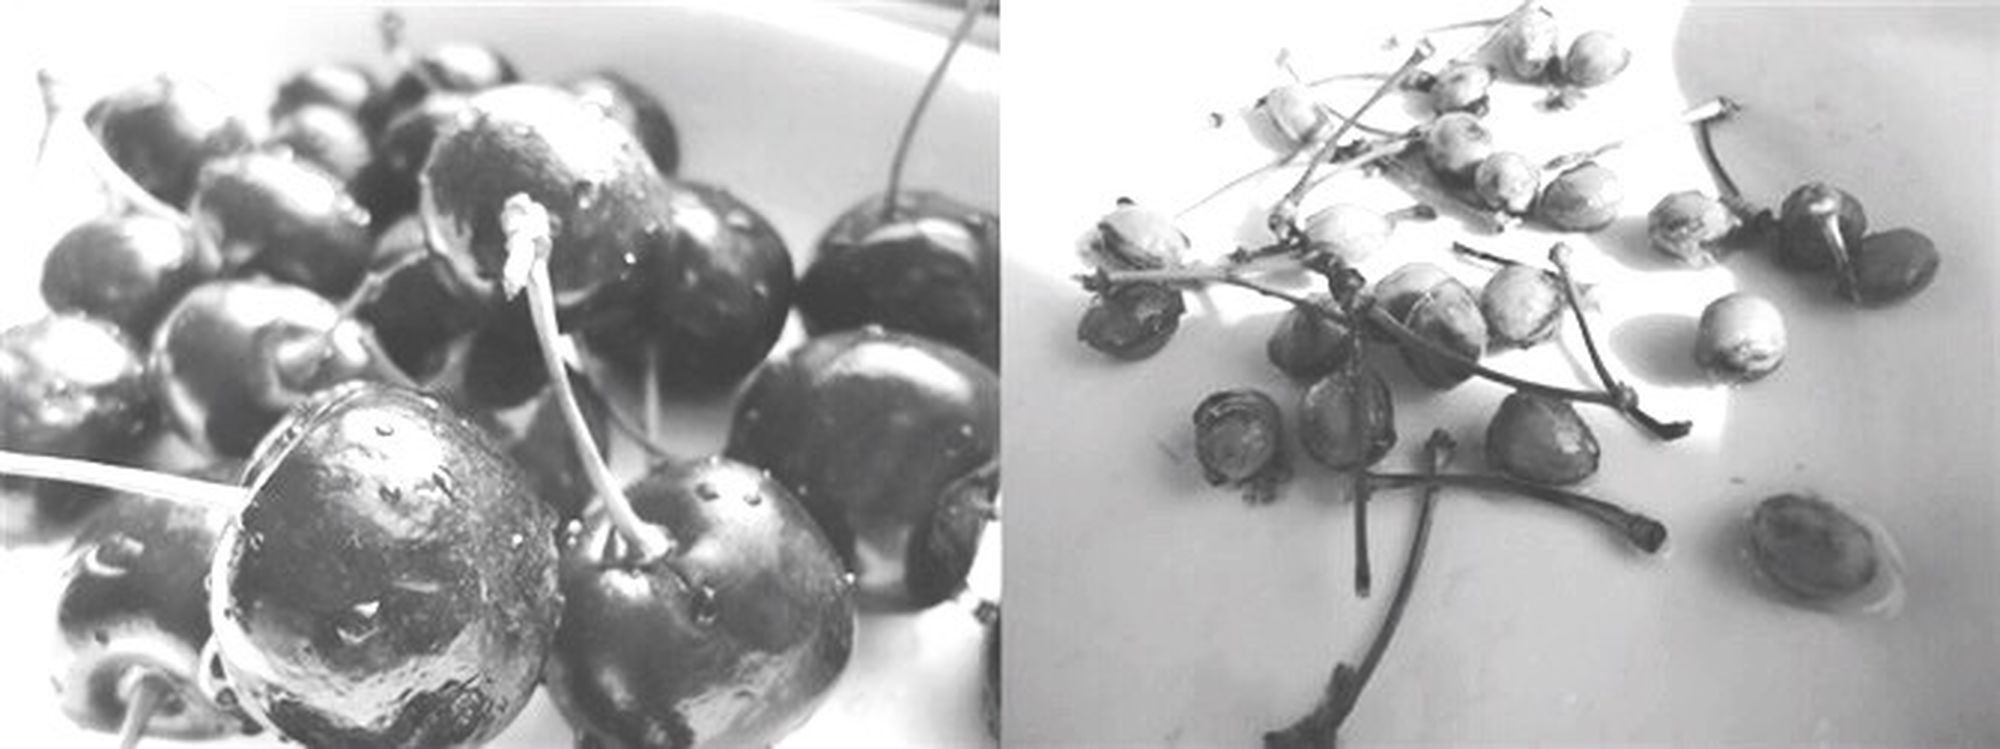 B&w Street Photography Delicious fruit